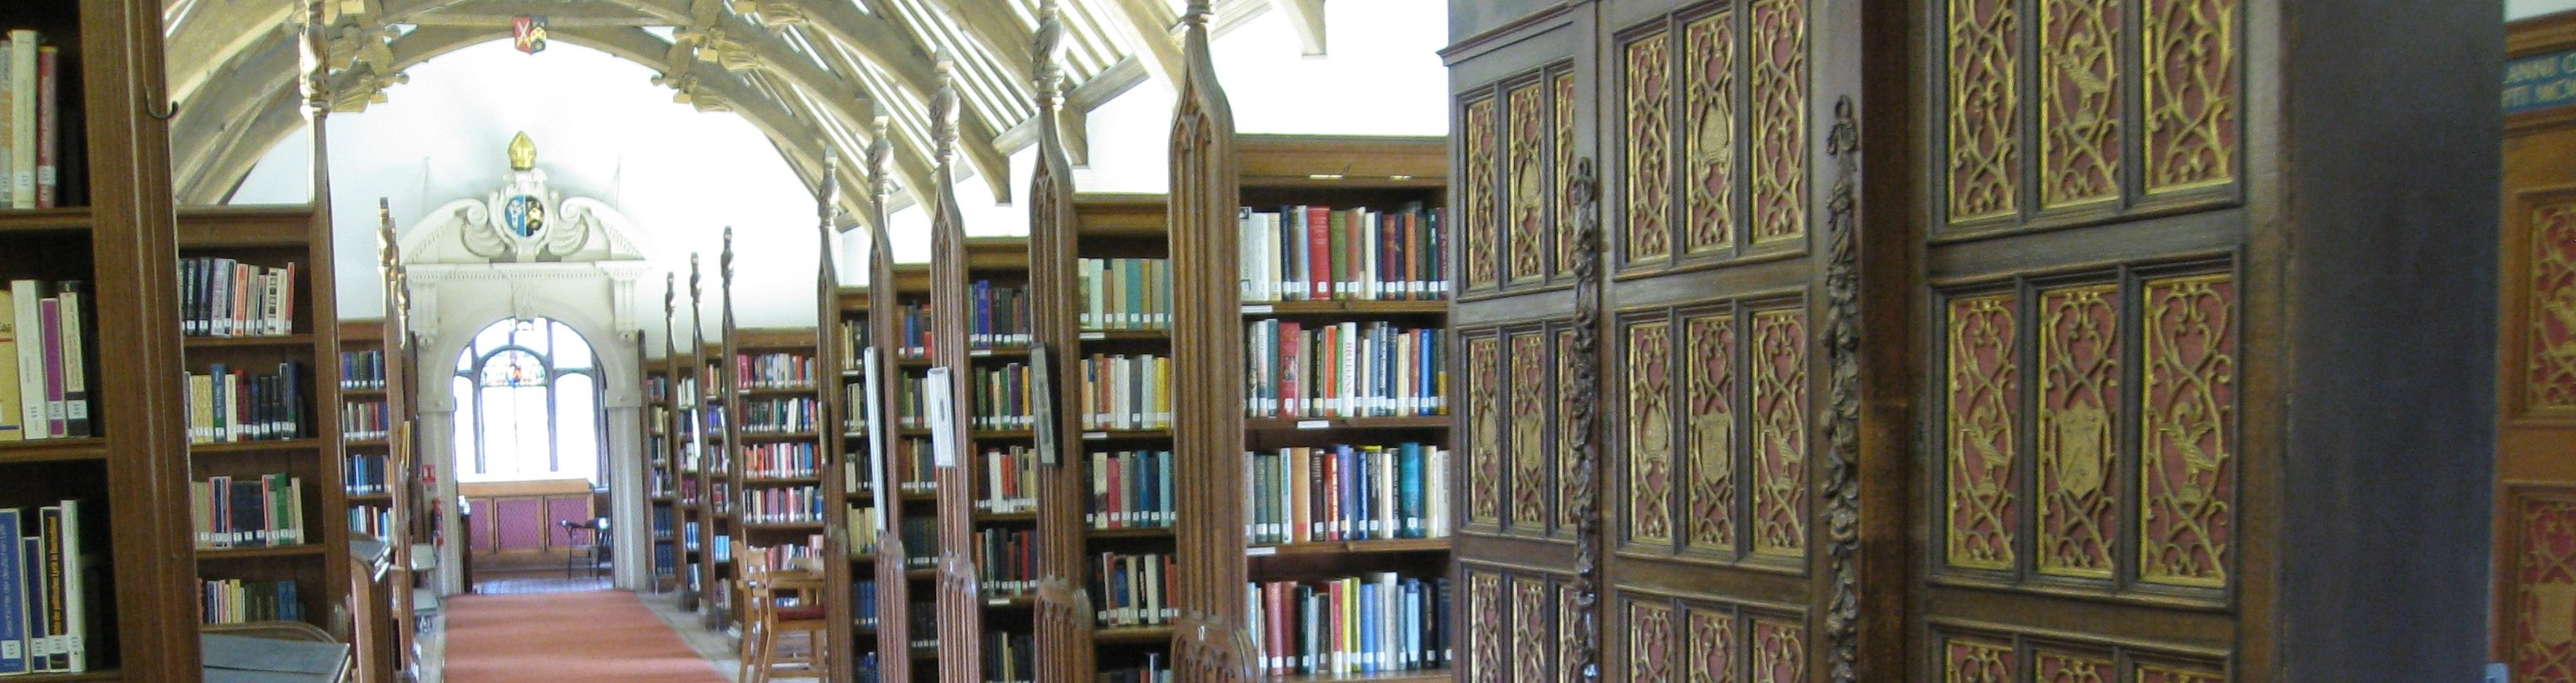 Laudian Library